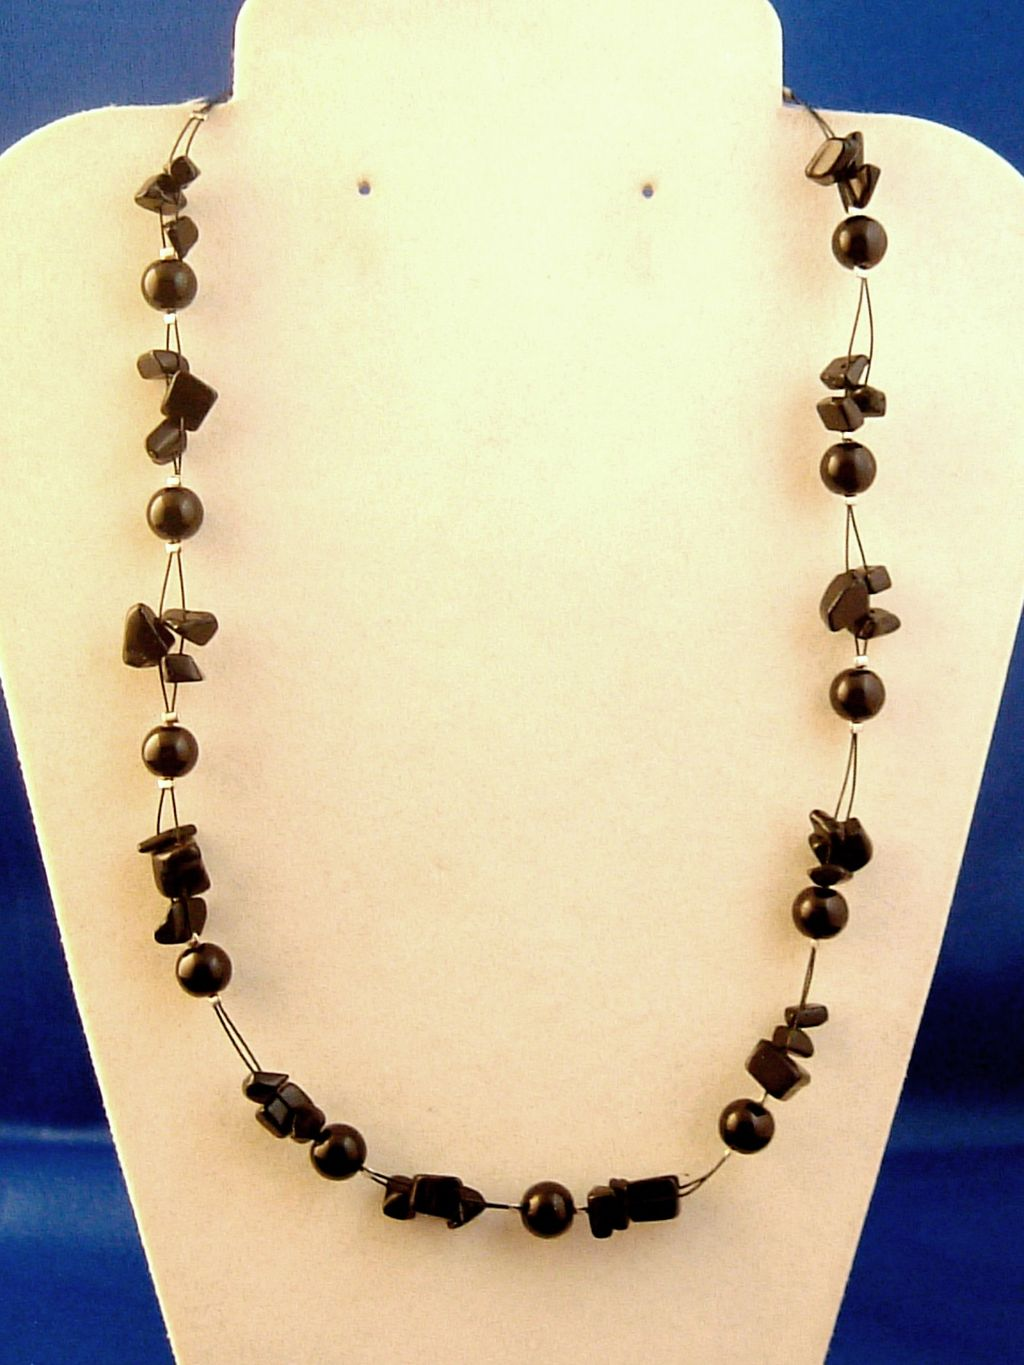 Black Necklace, Two Layers of Genuine Shells & Artificial Pearls, Fashion European Jewelry